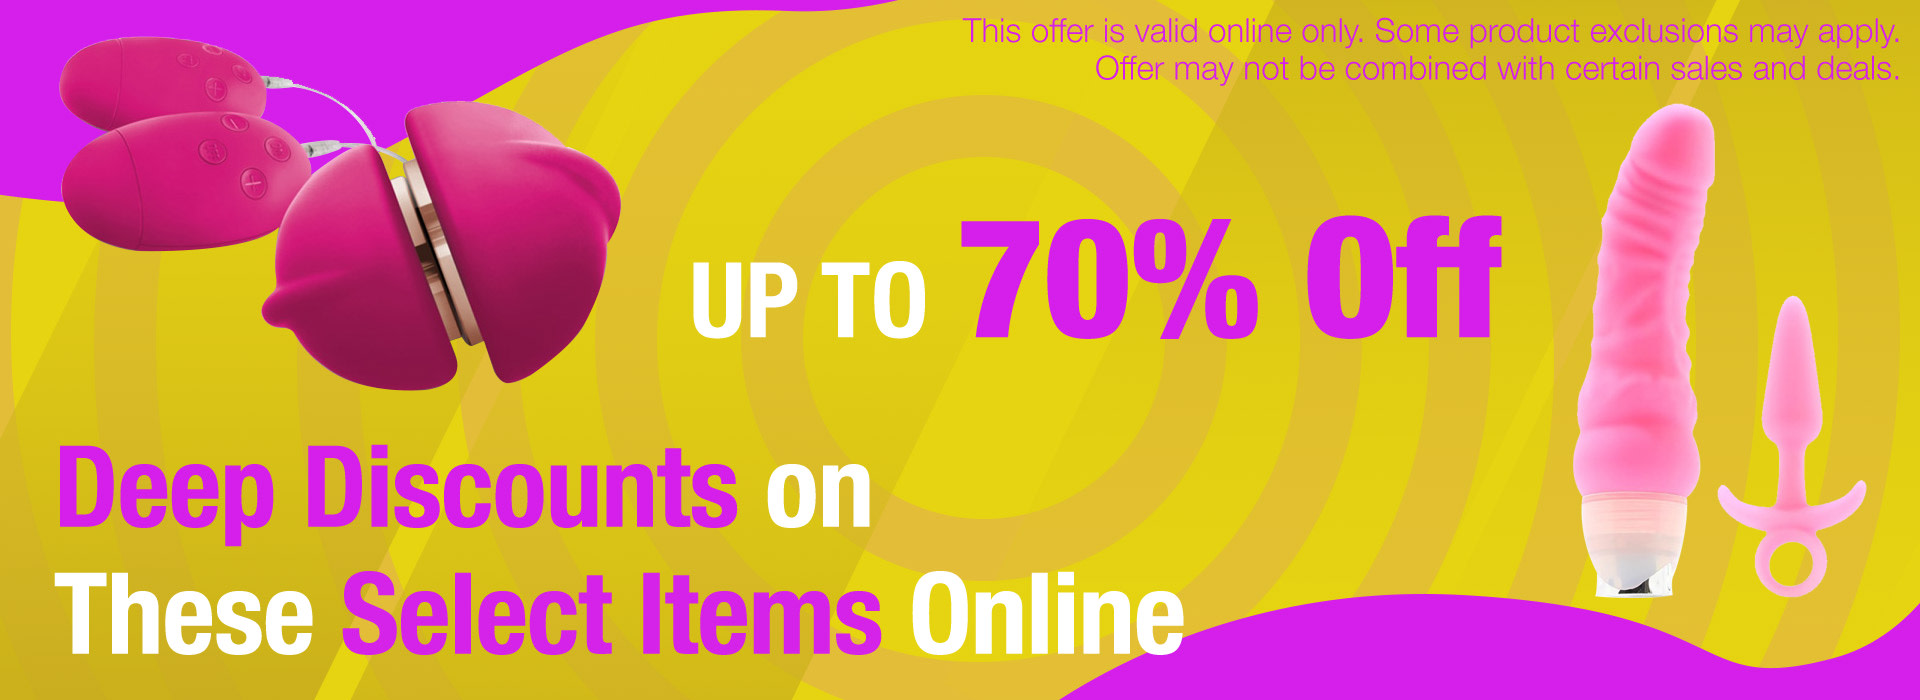 Up to 70% Off Select Products Online